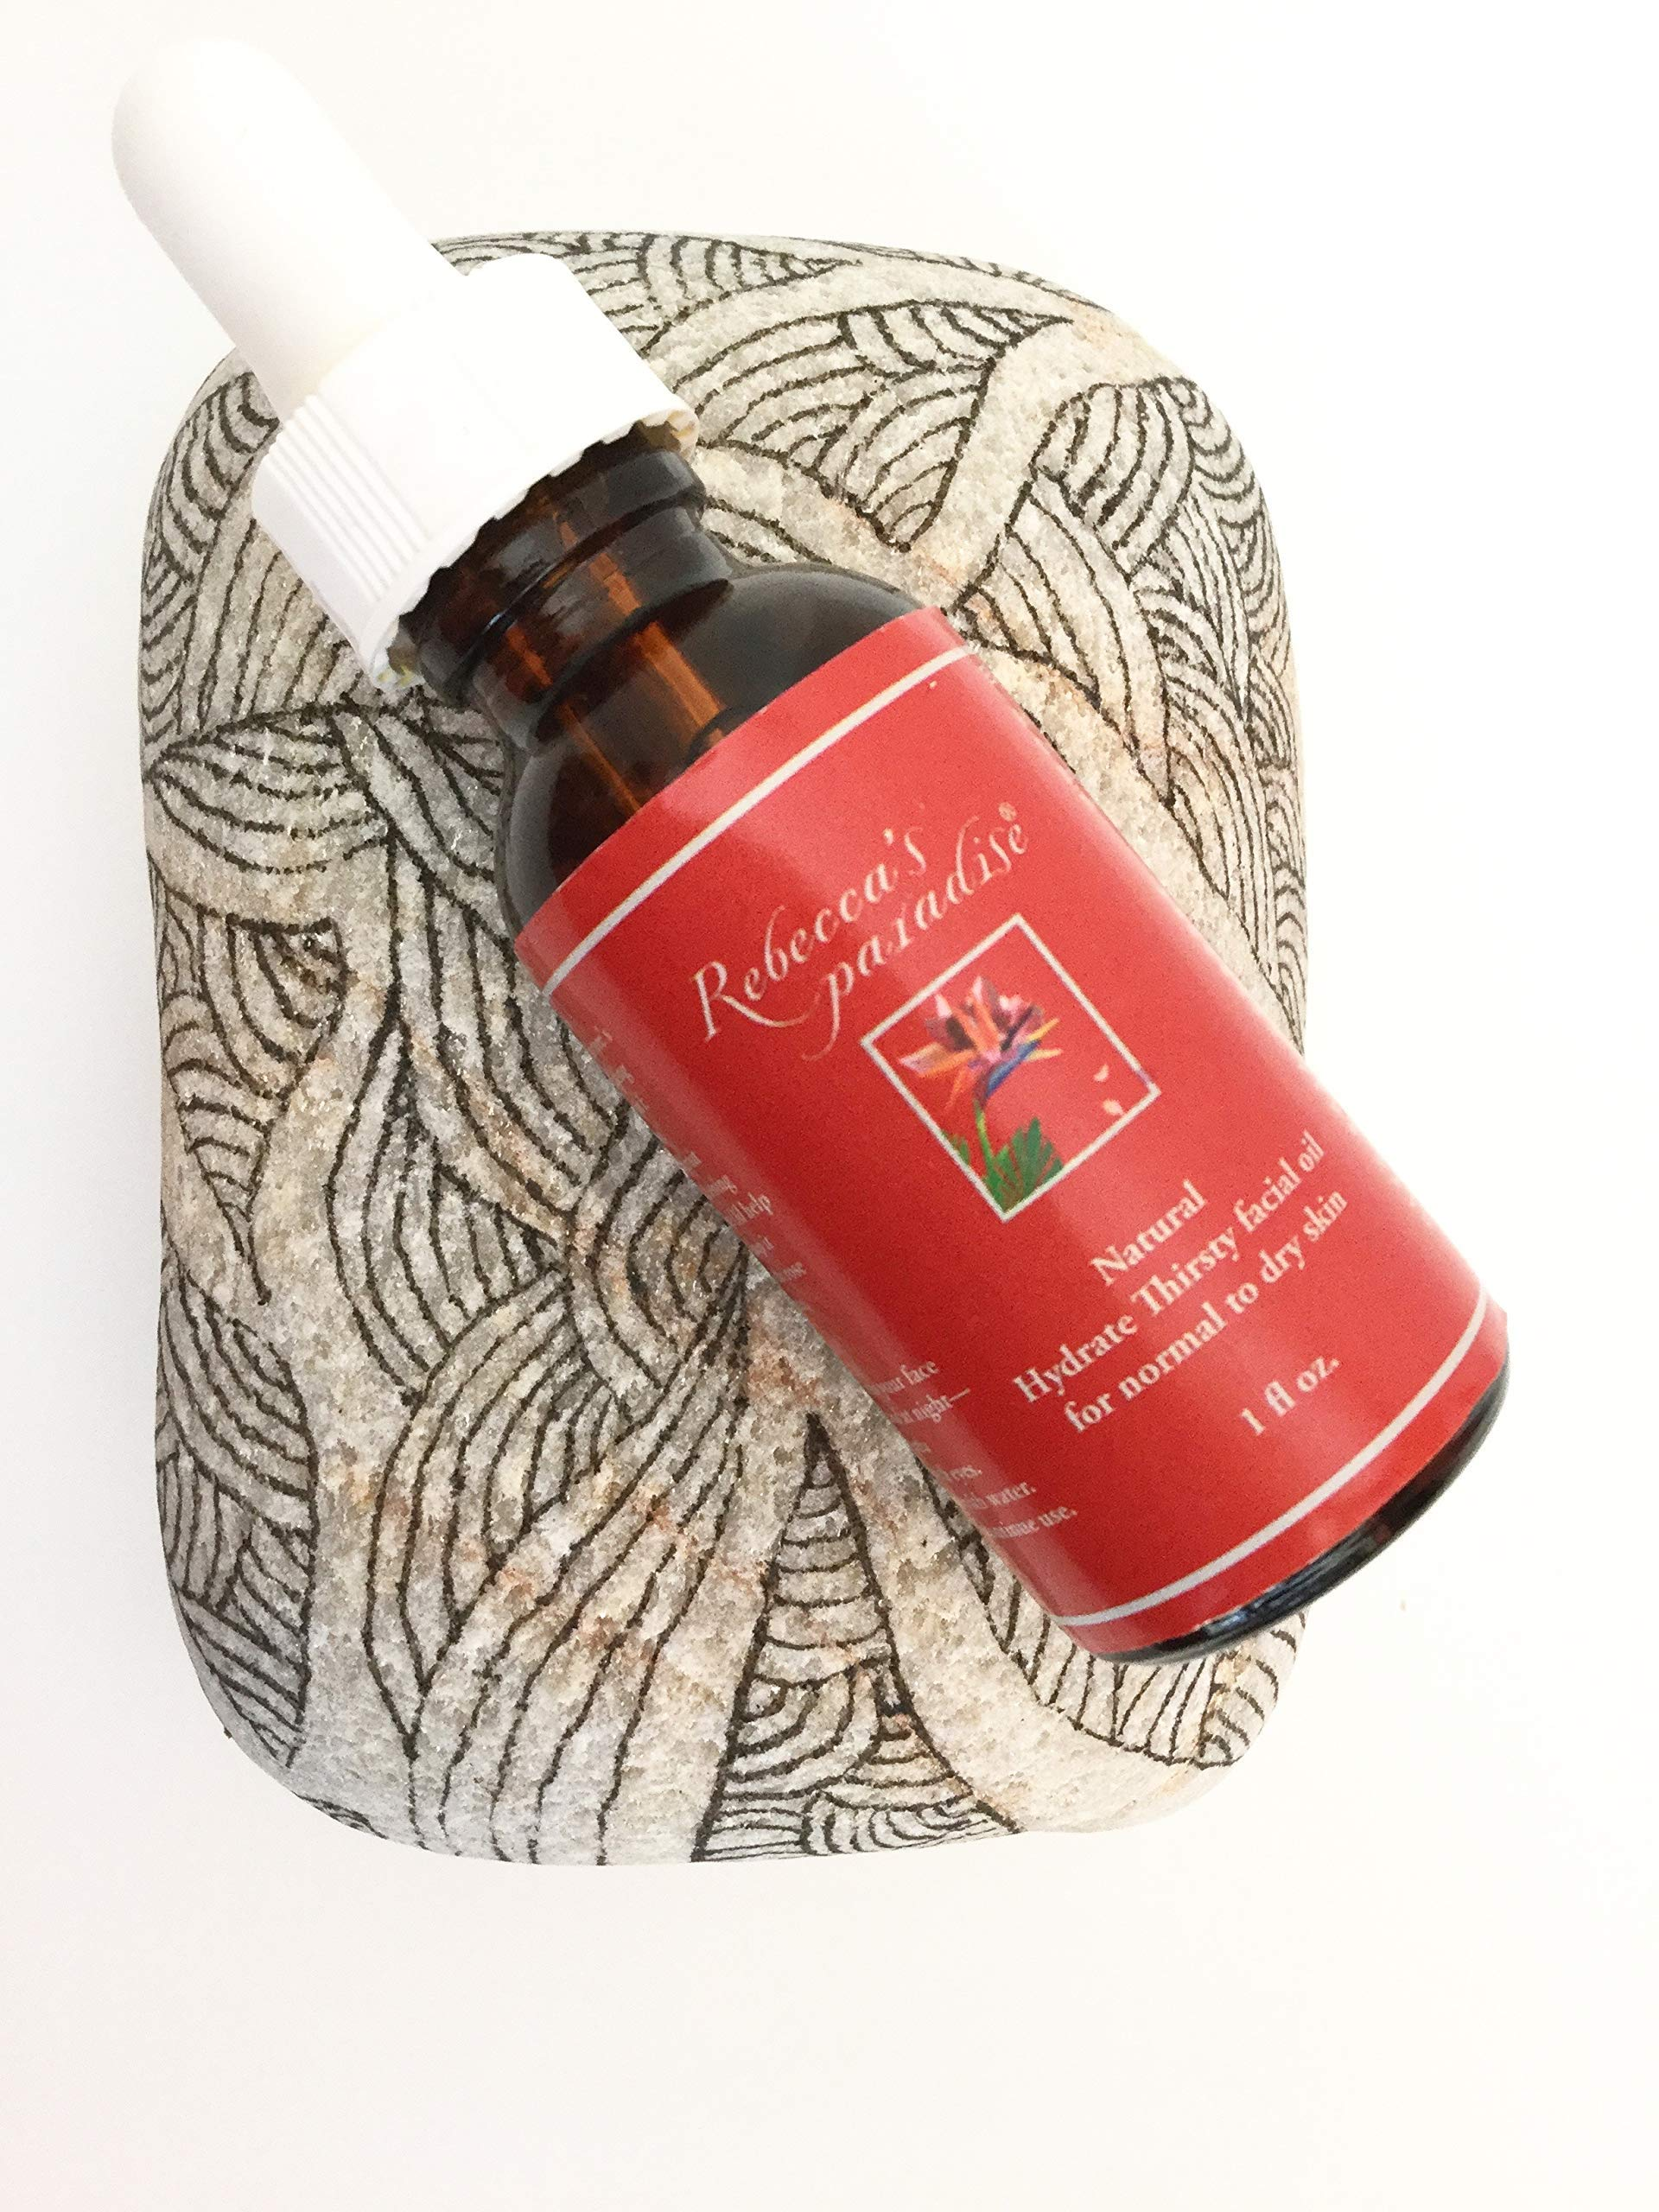 Natural Hydrate Thirsty facial oil for normal to dry skin